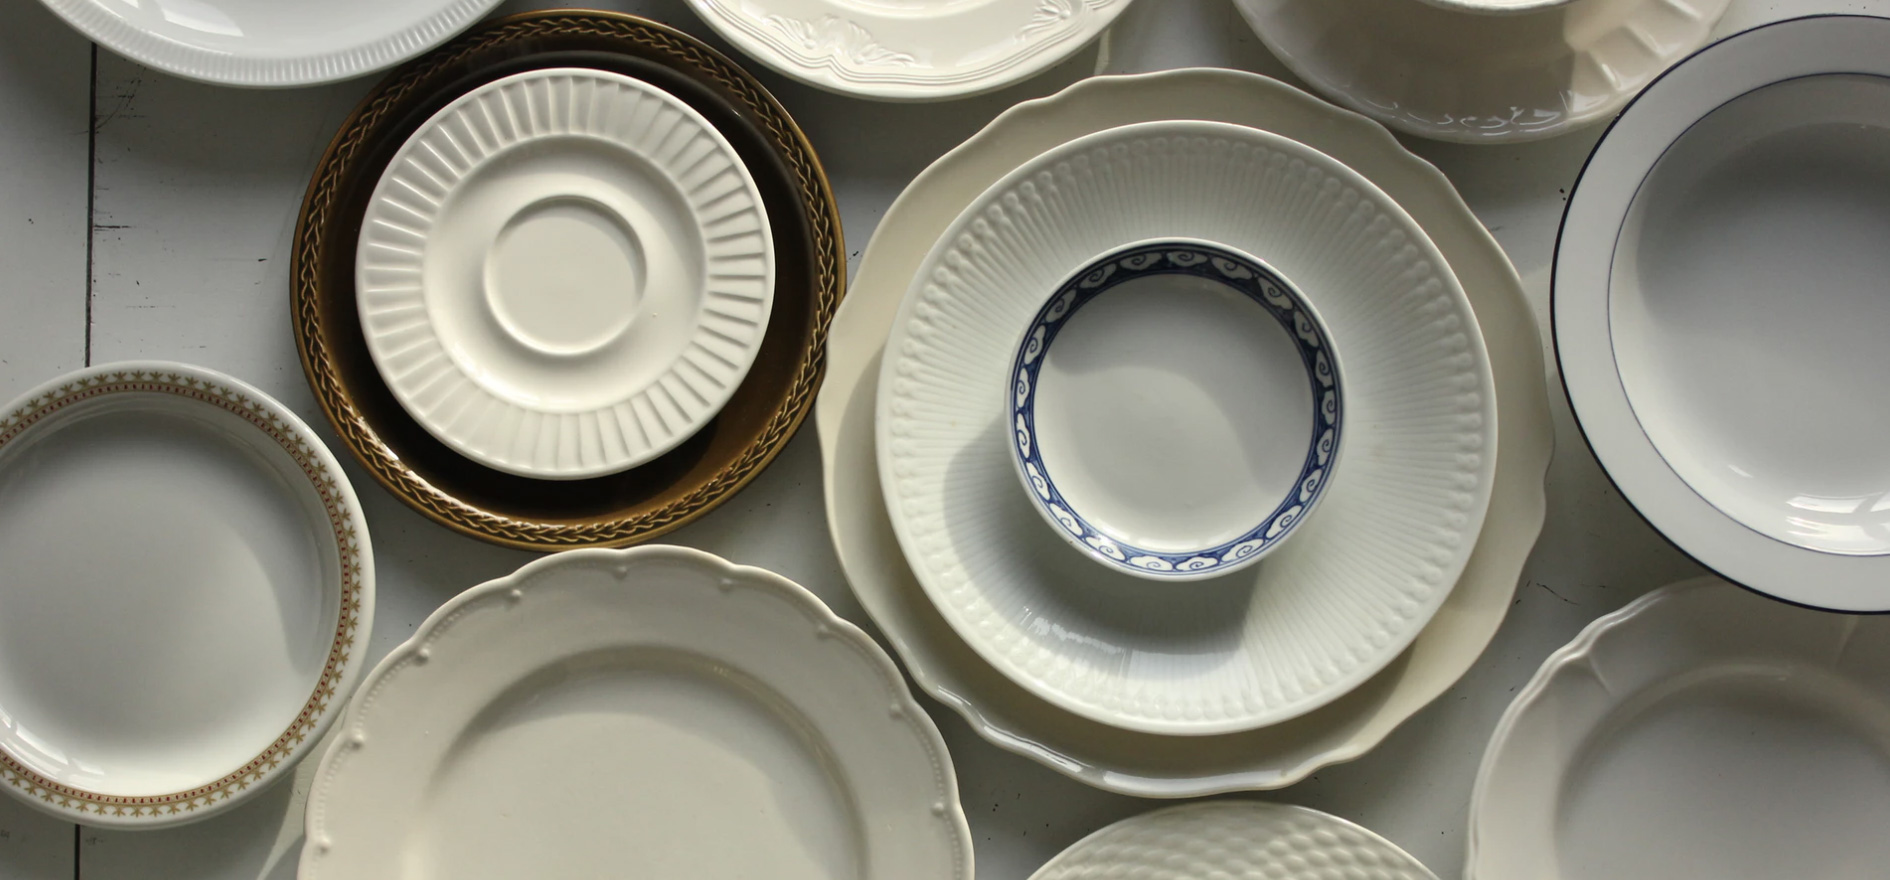 Plates on top of one another of different sizes